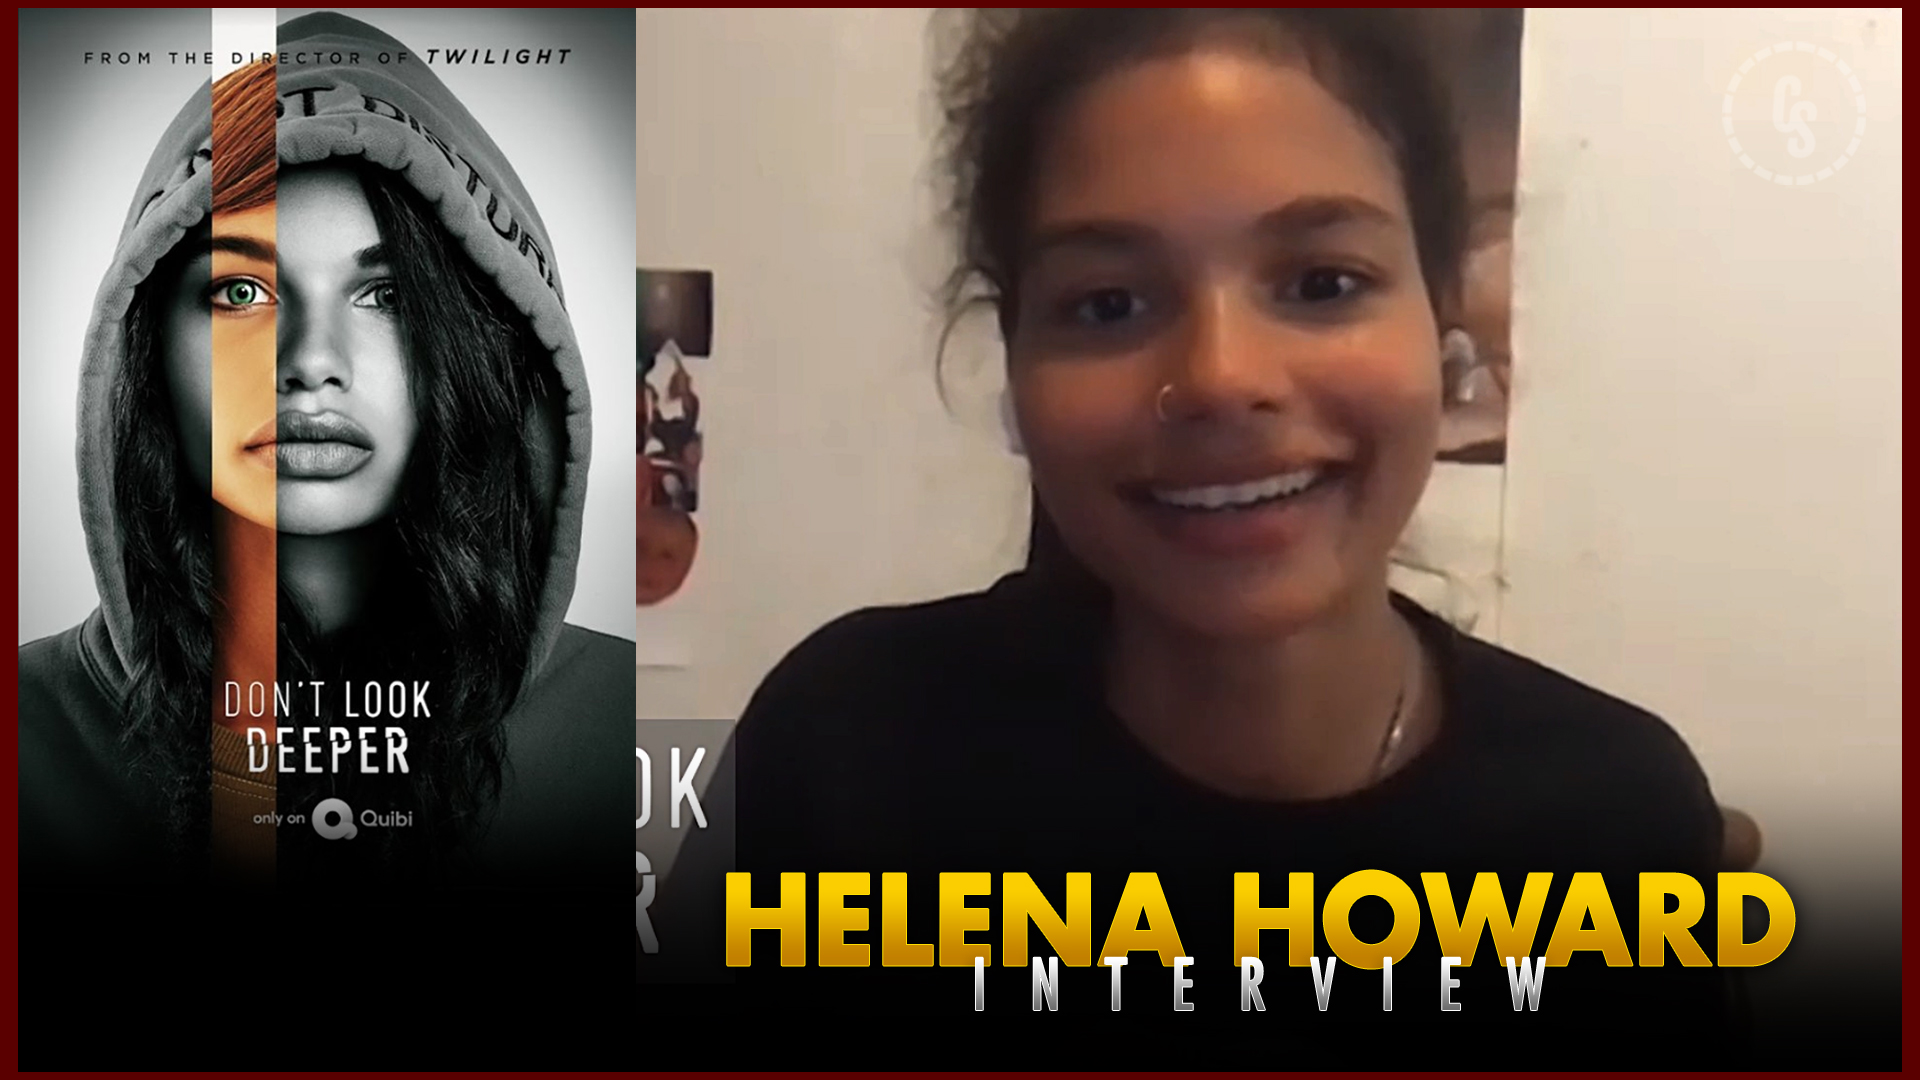 CS Video: Don't Look Deeper Interview With Star Helena Howard